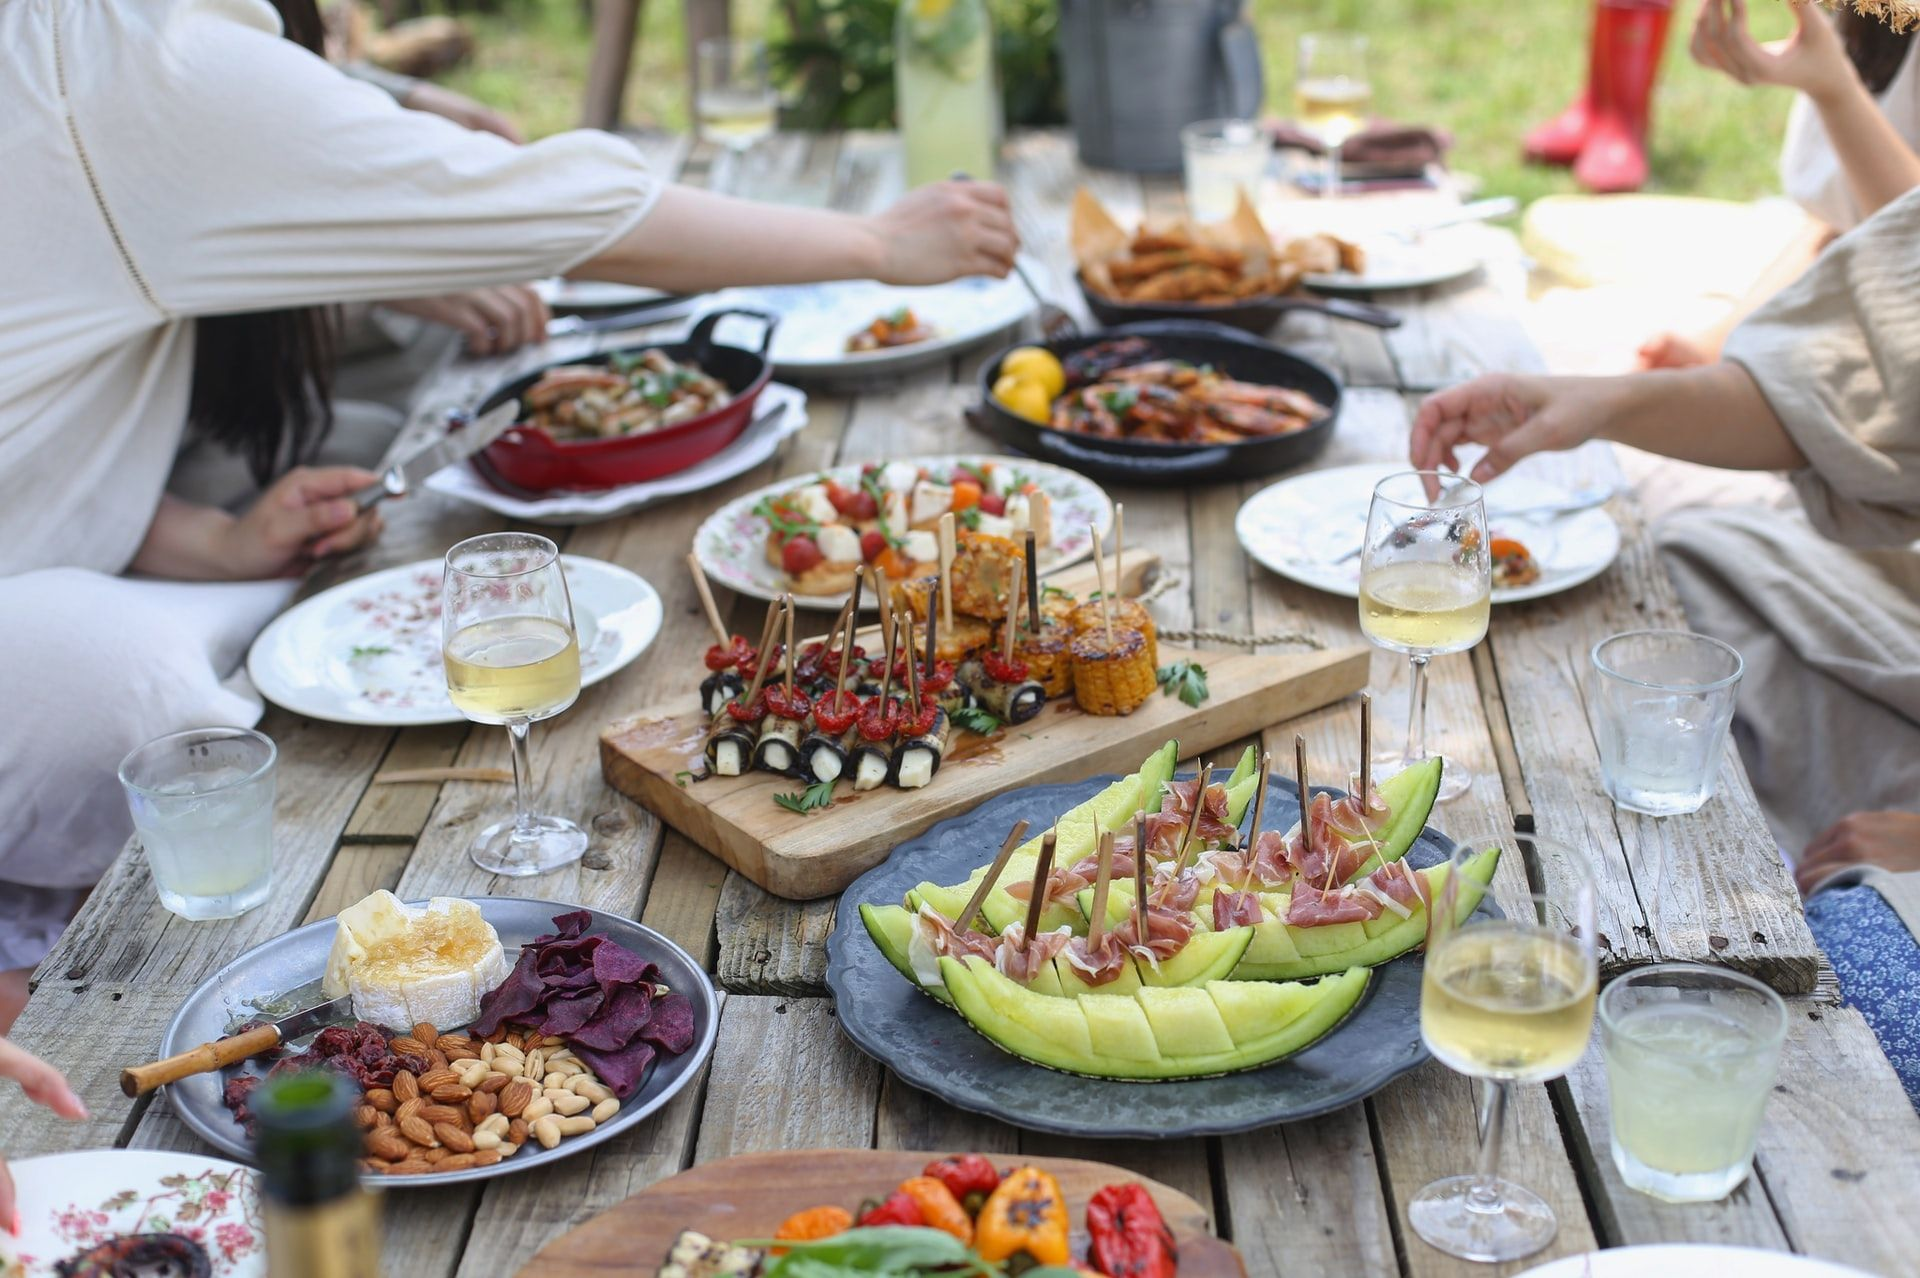 8 Easy Backyard Party Ideas For The Best Outdoor Get-Togethers